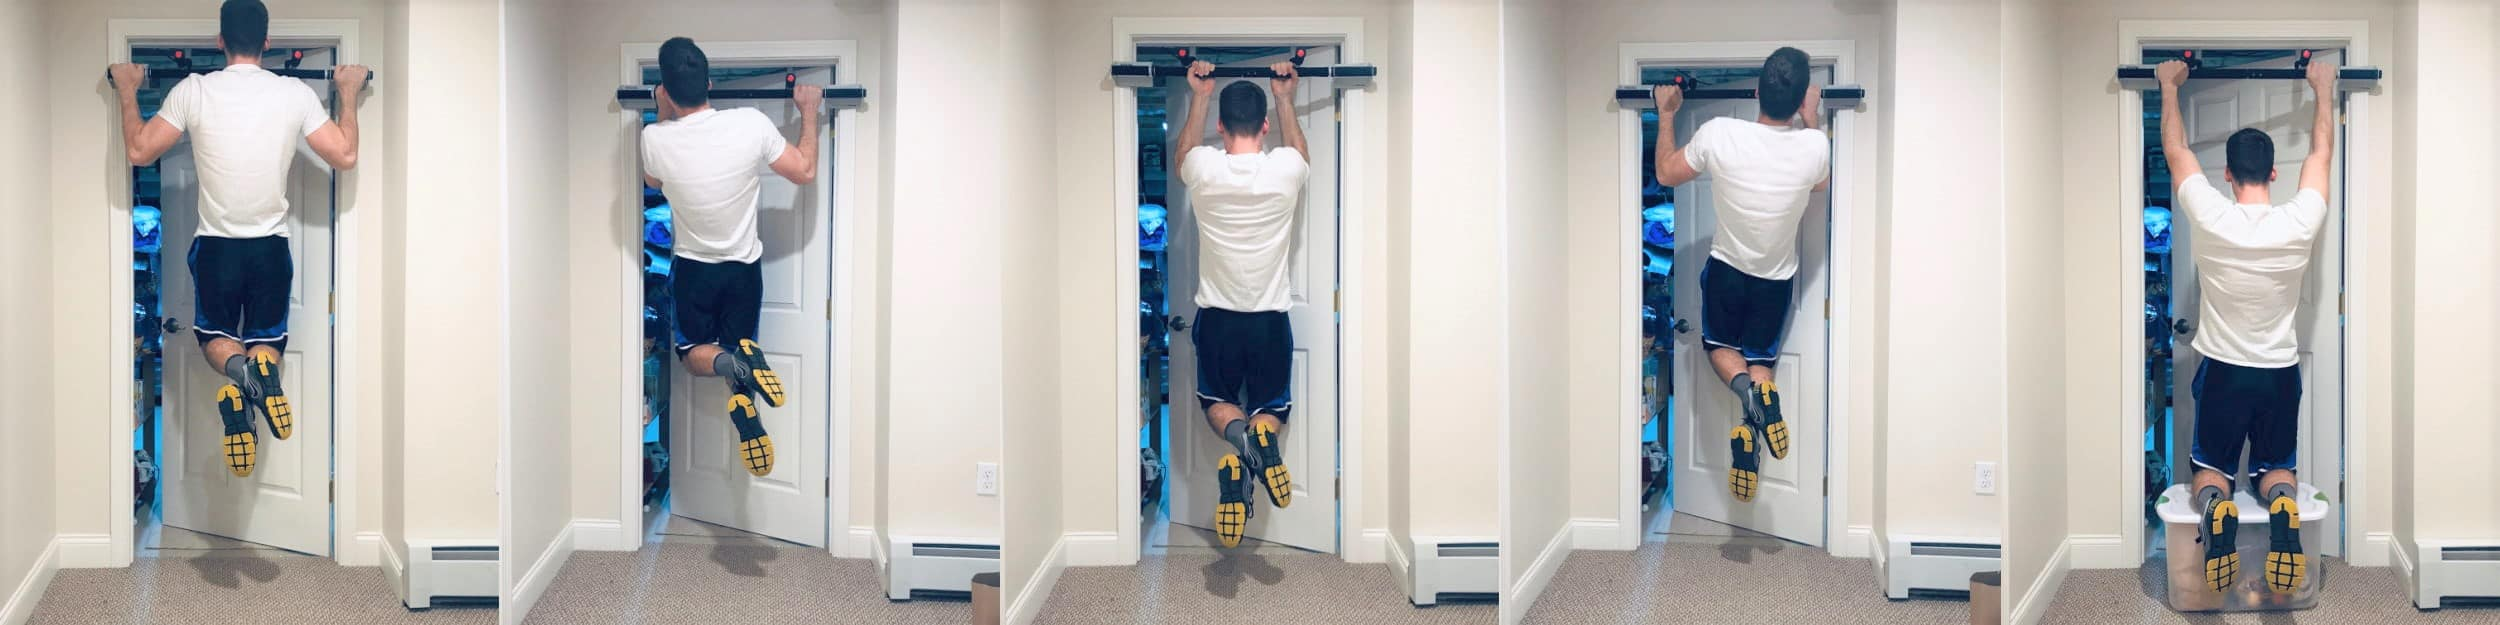 Best Doorway Pull Up Bar Workouts For Beginners And The Advanced